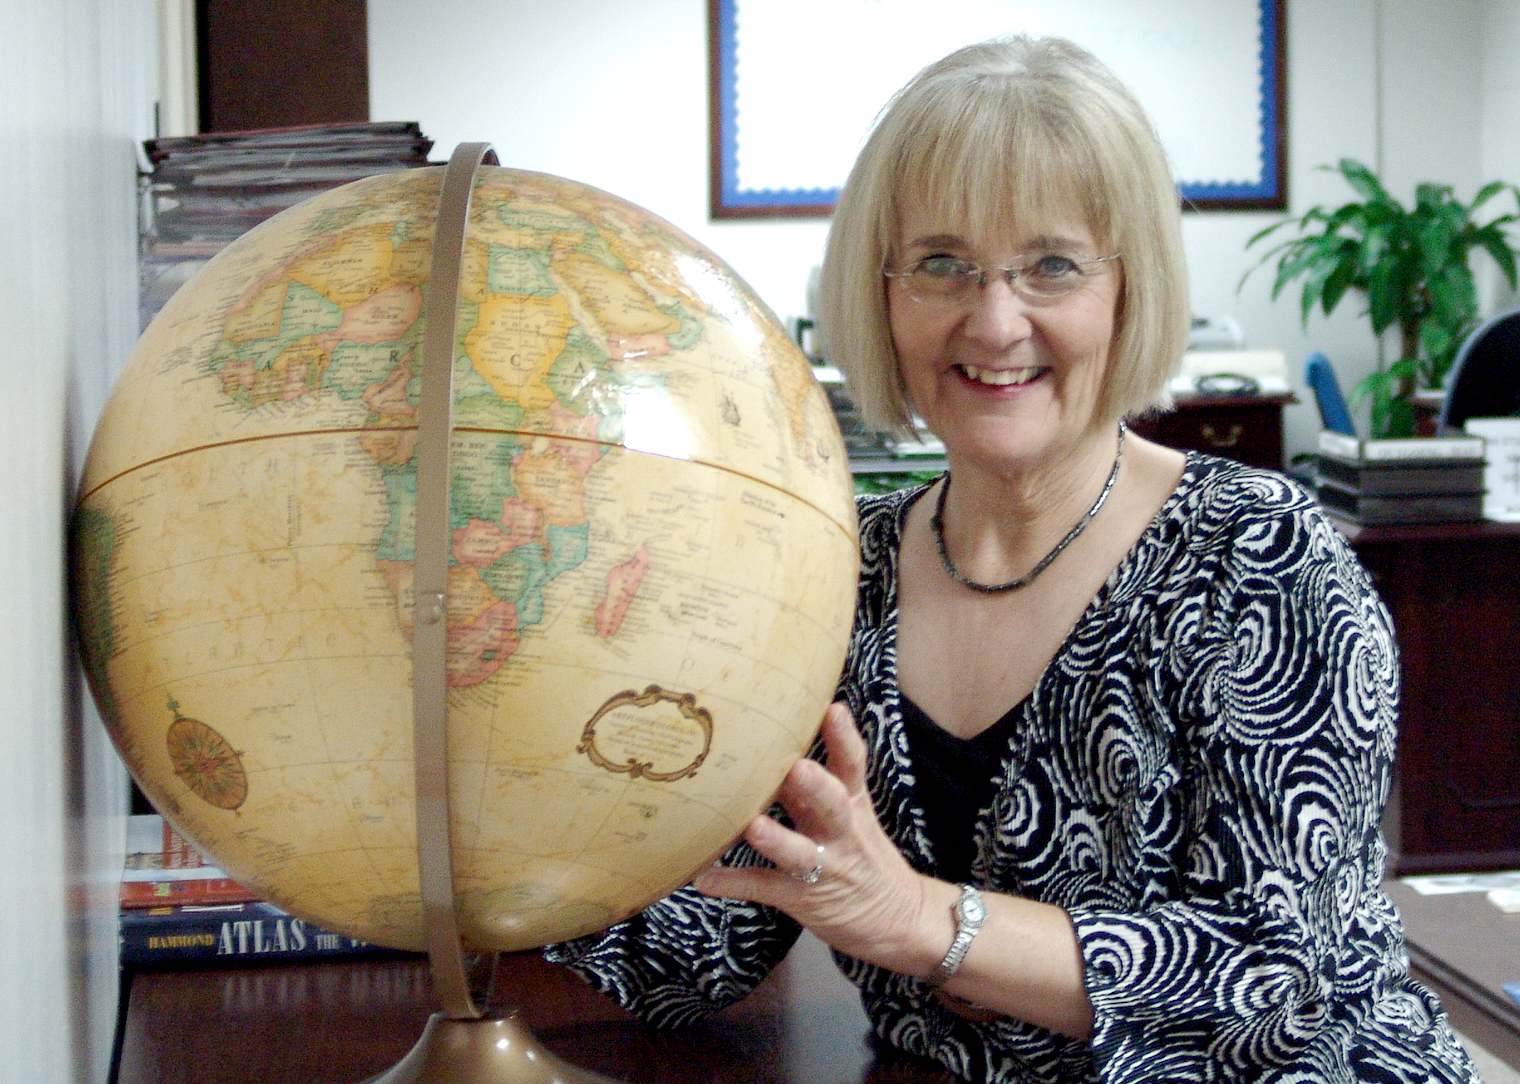 a woman smiling at a globe